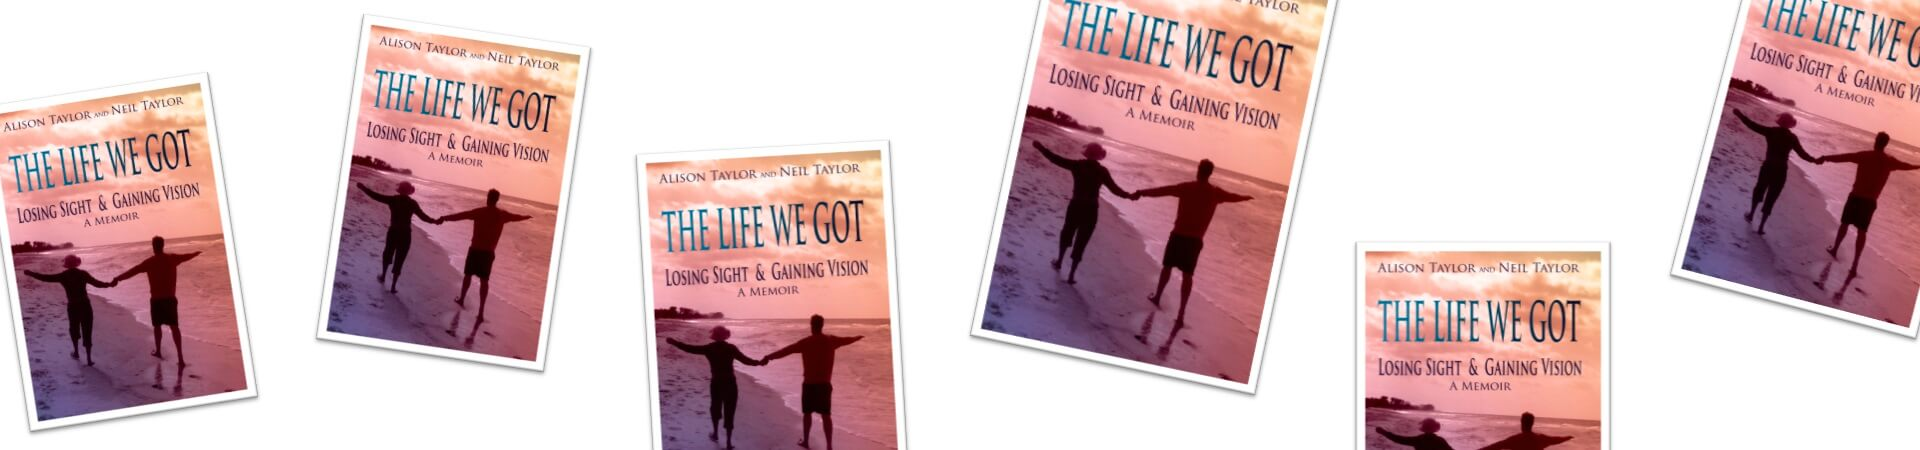 The Life We Got bookcover featuring Alison Taylor and Neil Taylor holding hands on the beach.